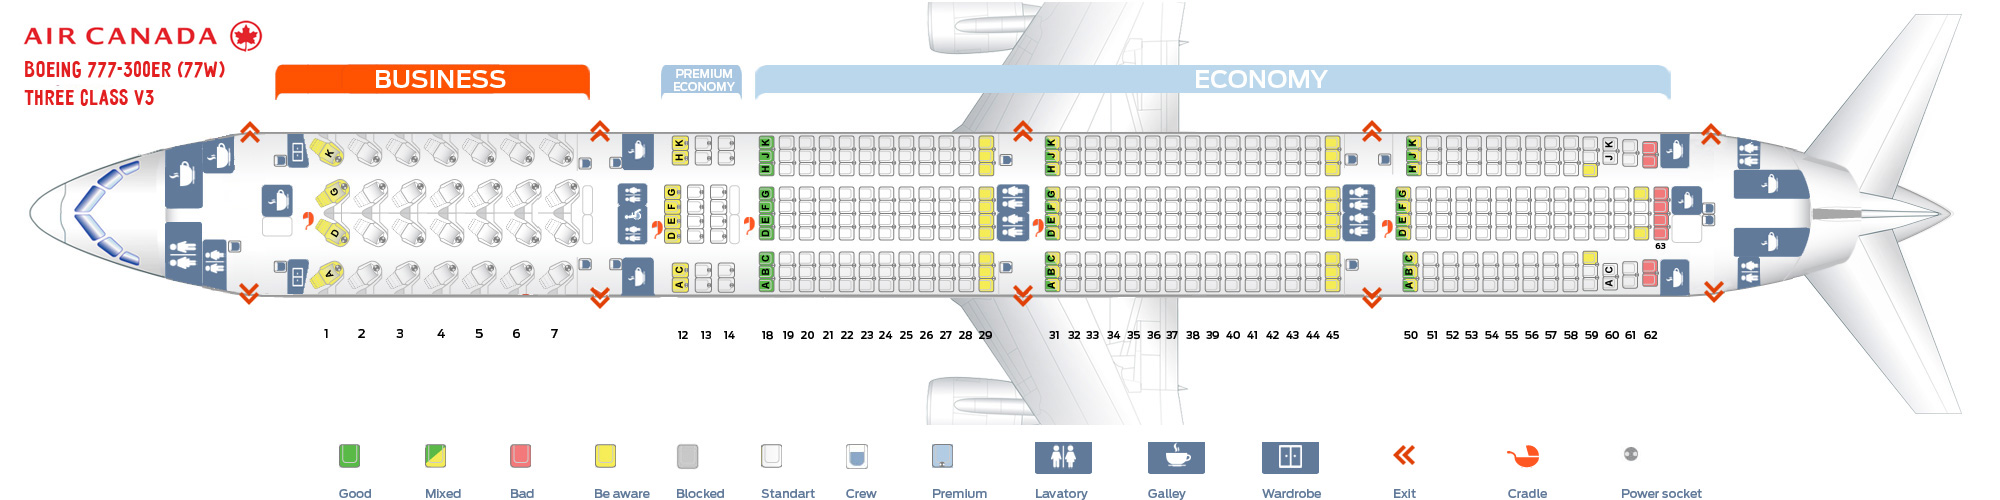 Seat Map and Seating Chart Boeing 777 300ER Air Canada 77W Three Class V2